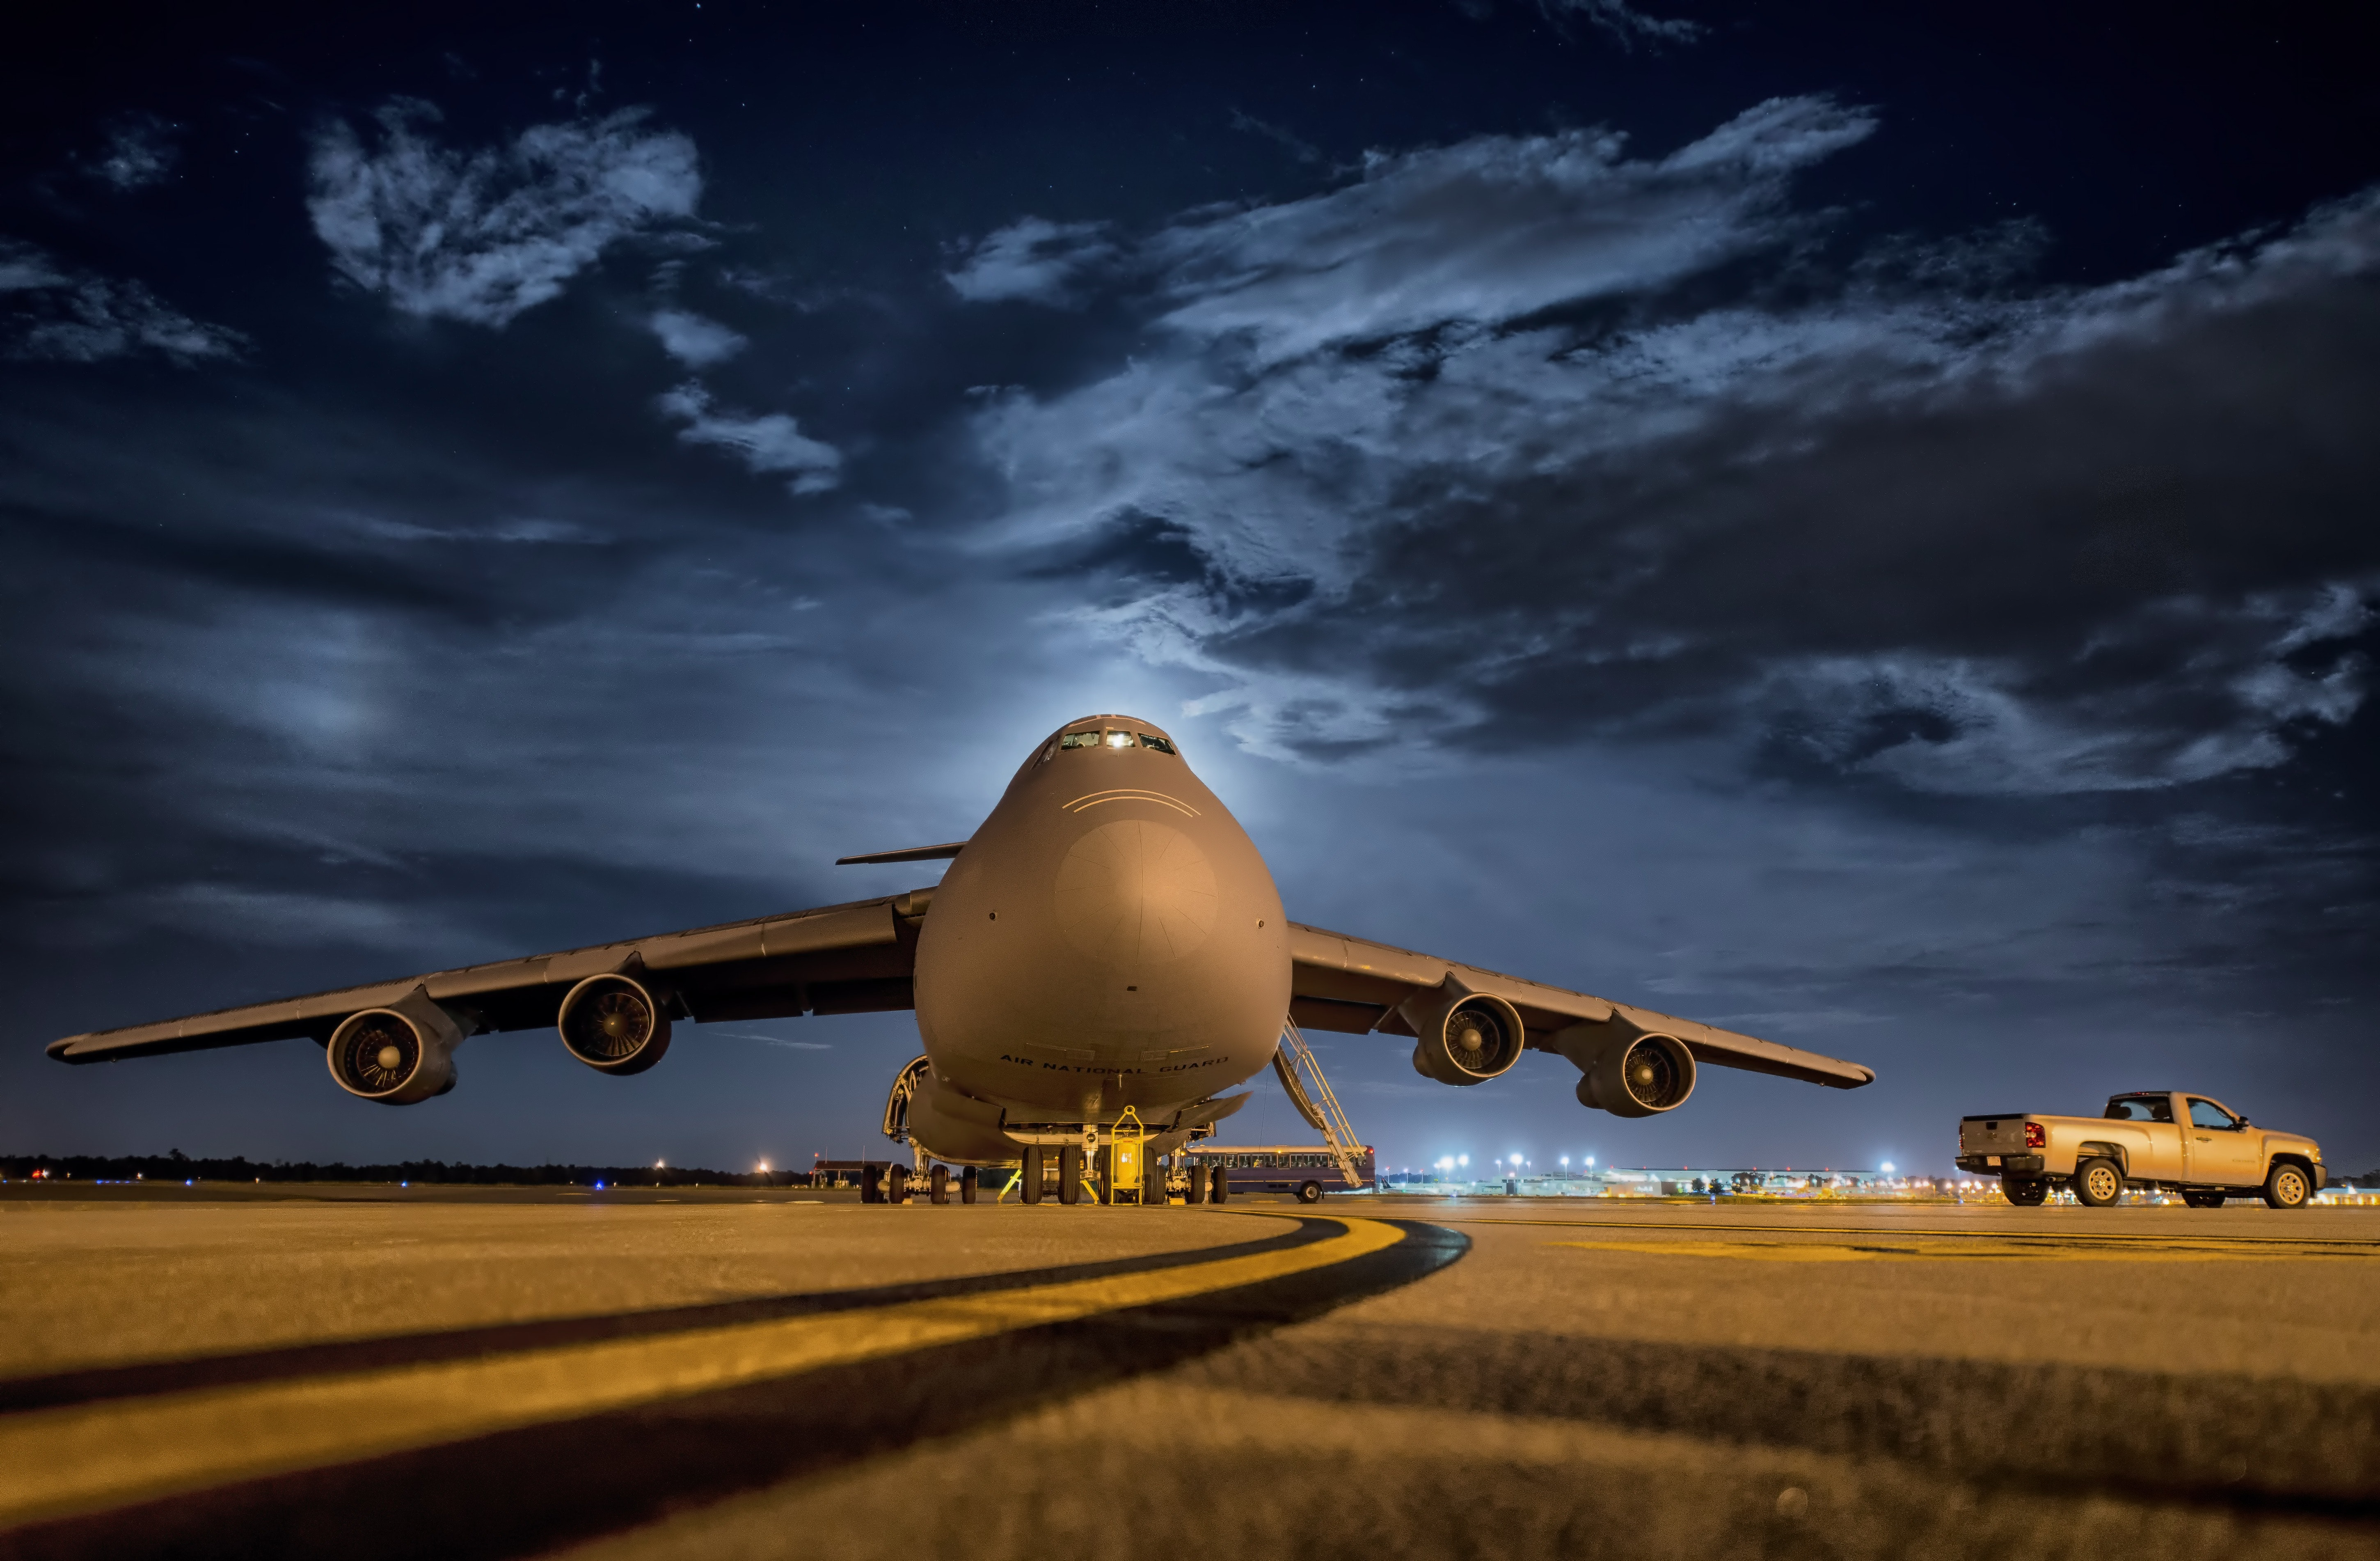 Airplane in Front and Night Sky, Aeroplane, Aircraft, Airplane, Airport, HQ Photo